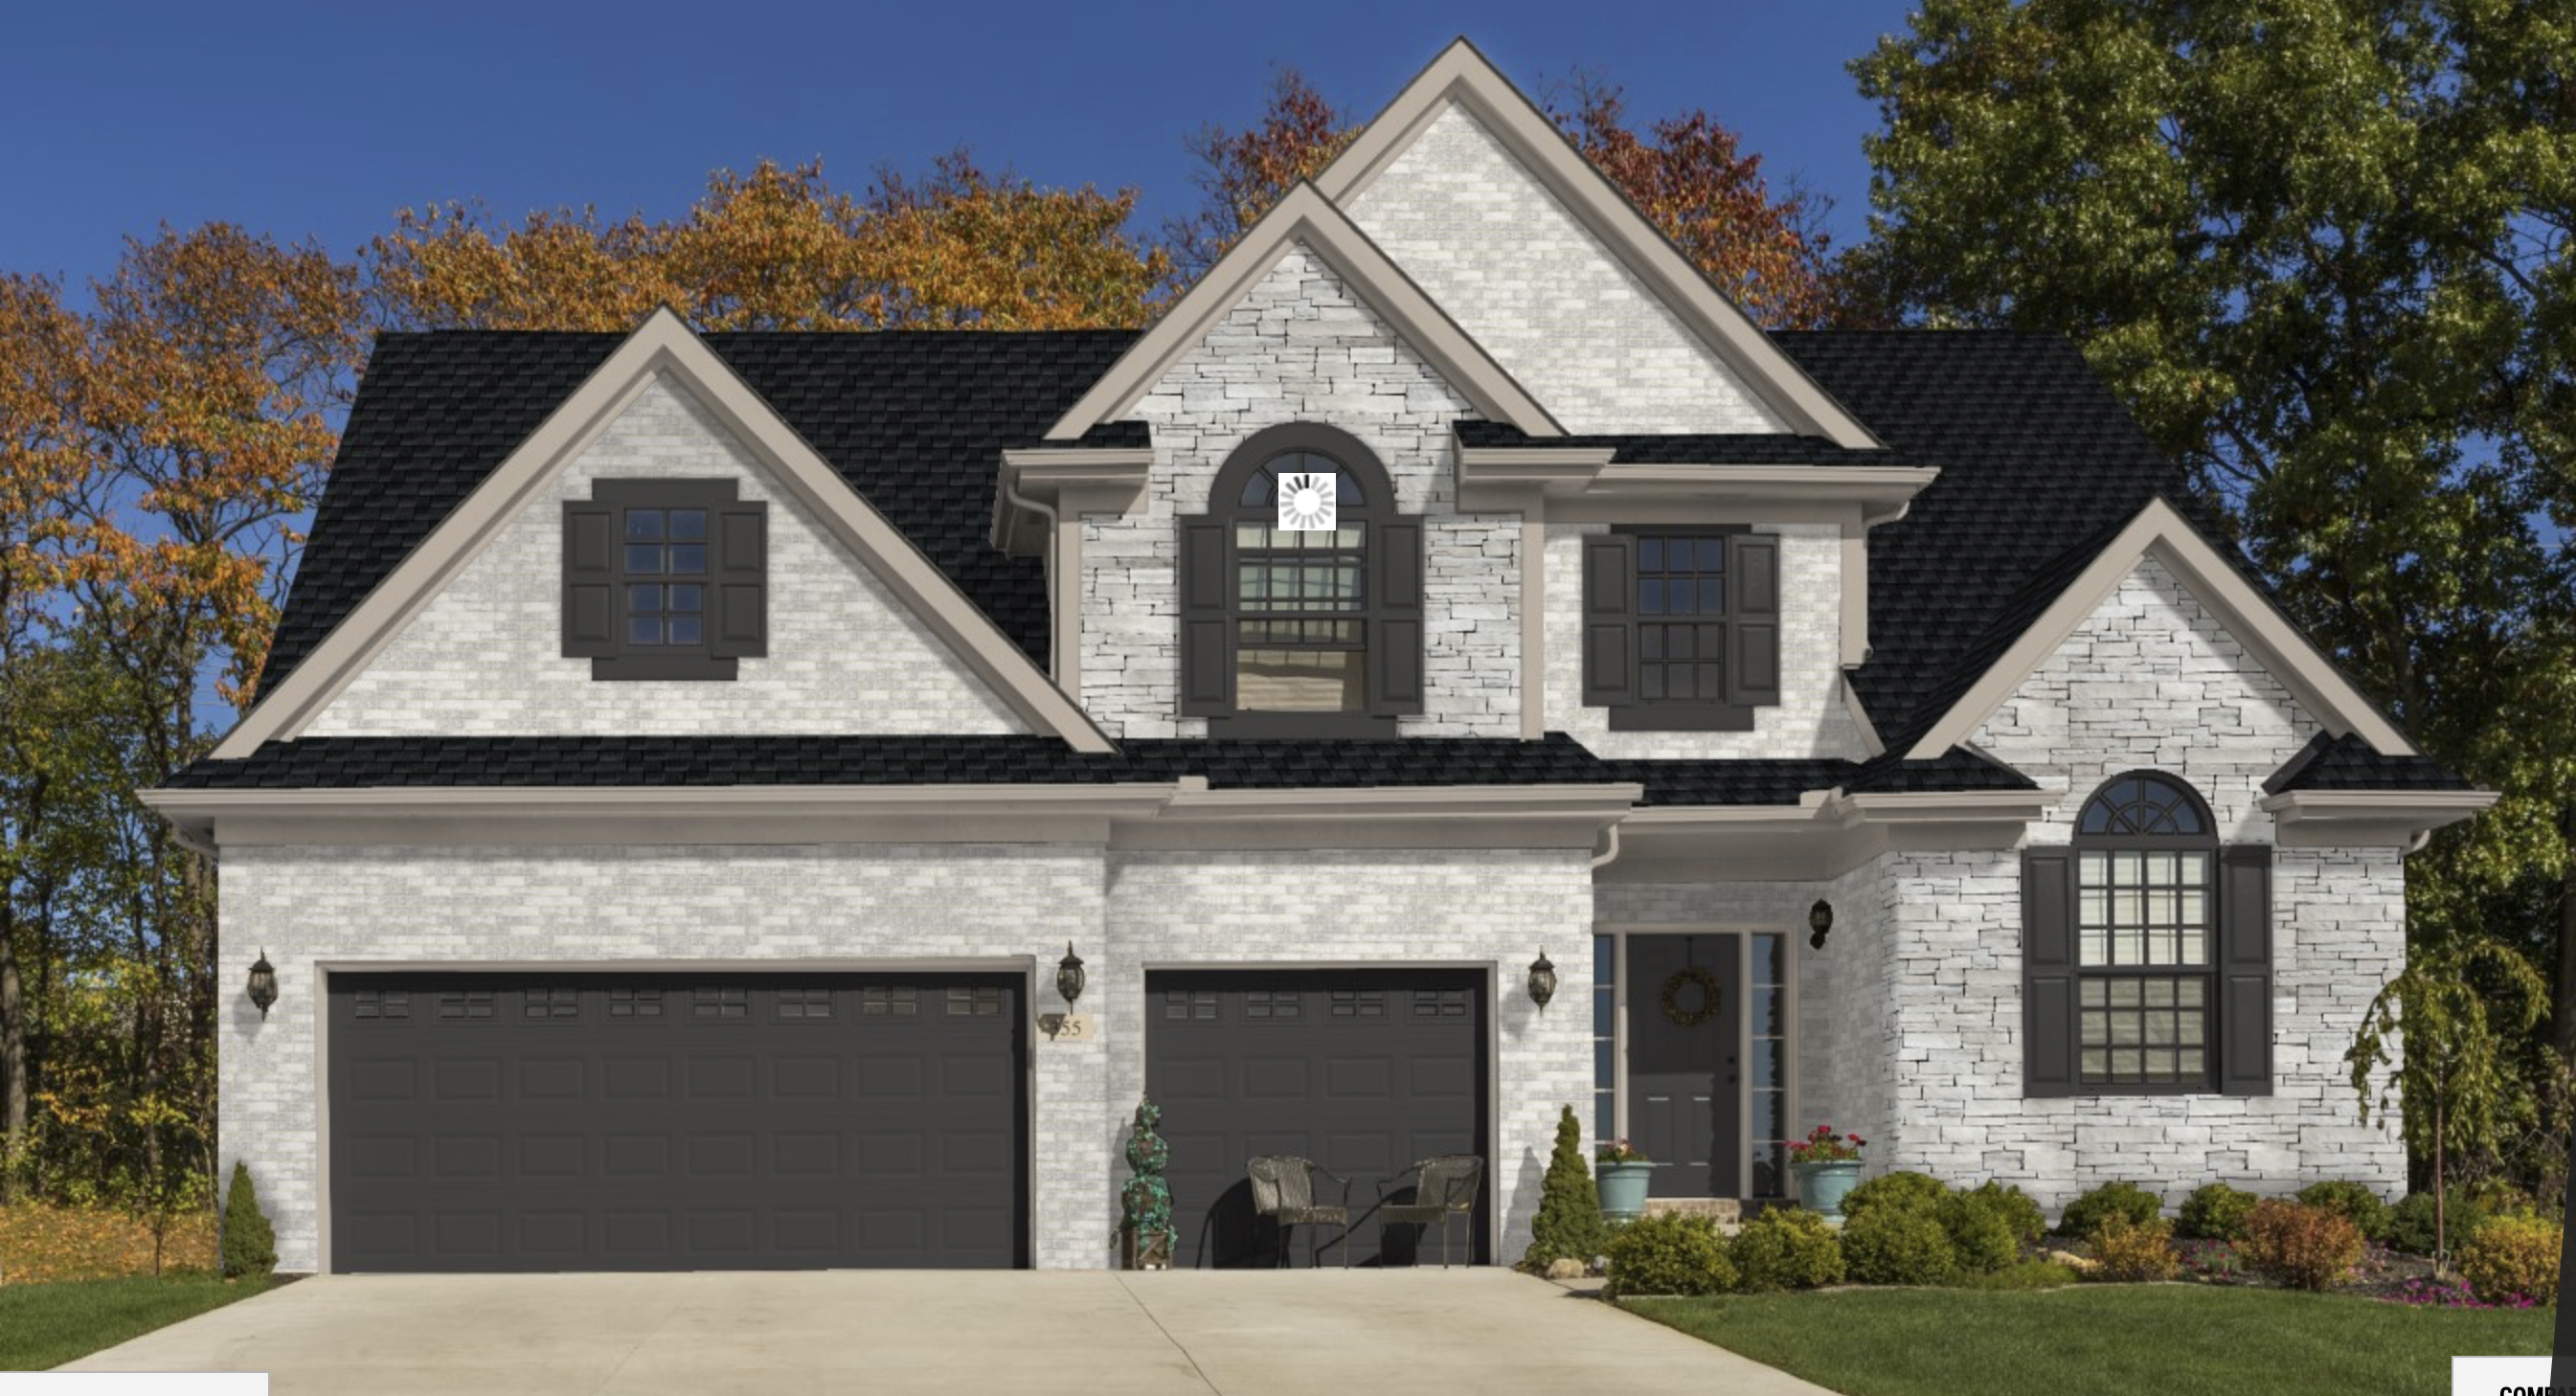 Shade Of White Brick With Dark Roof And Gray White Stone With Light Colored Mortar Brick Exterior House Brick House Trim White Brick Houses